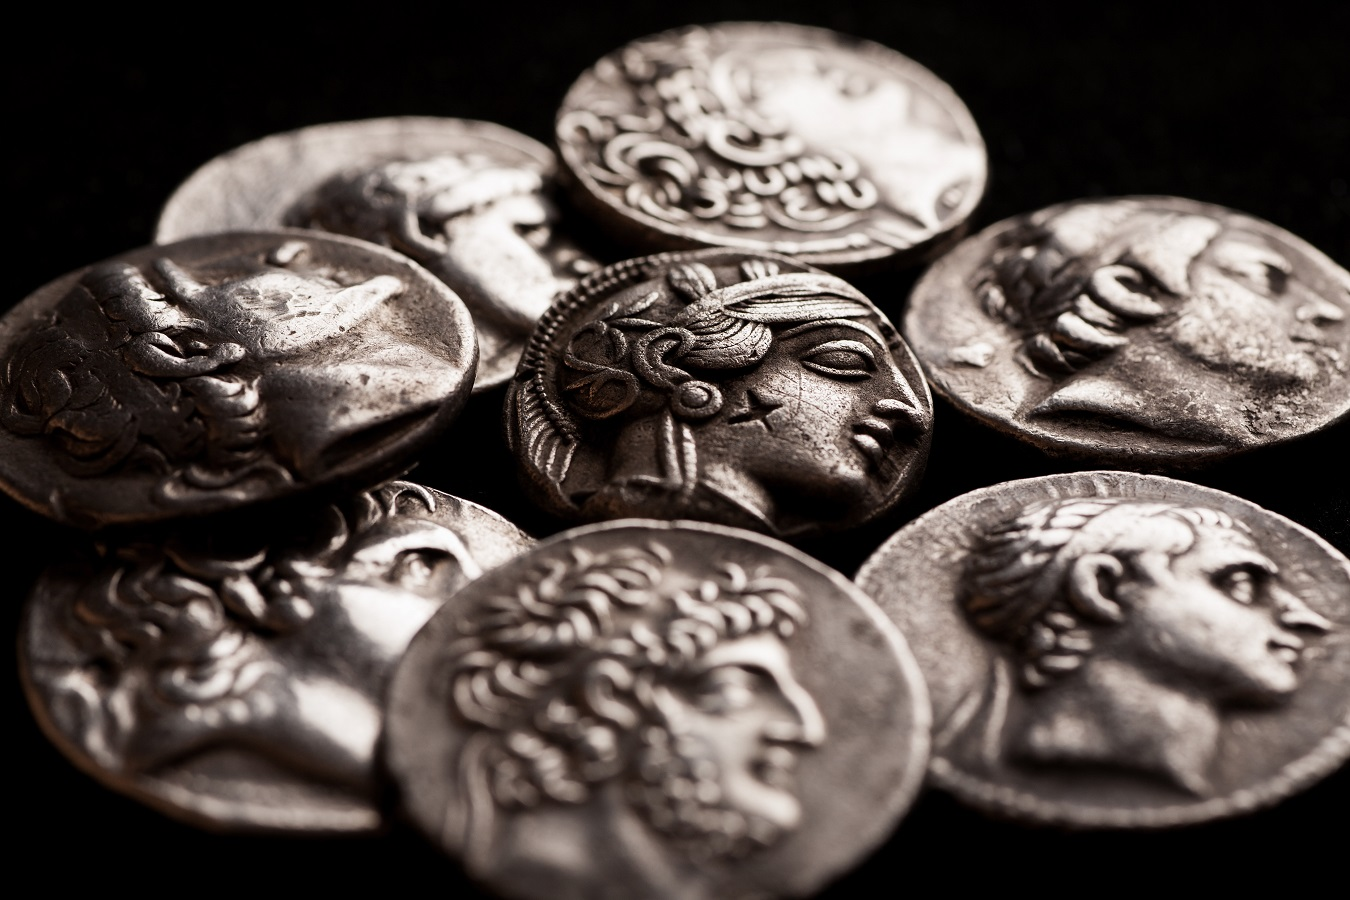 Antique Coins: A Highly Profitable Business